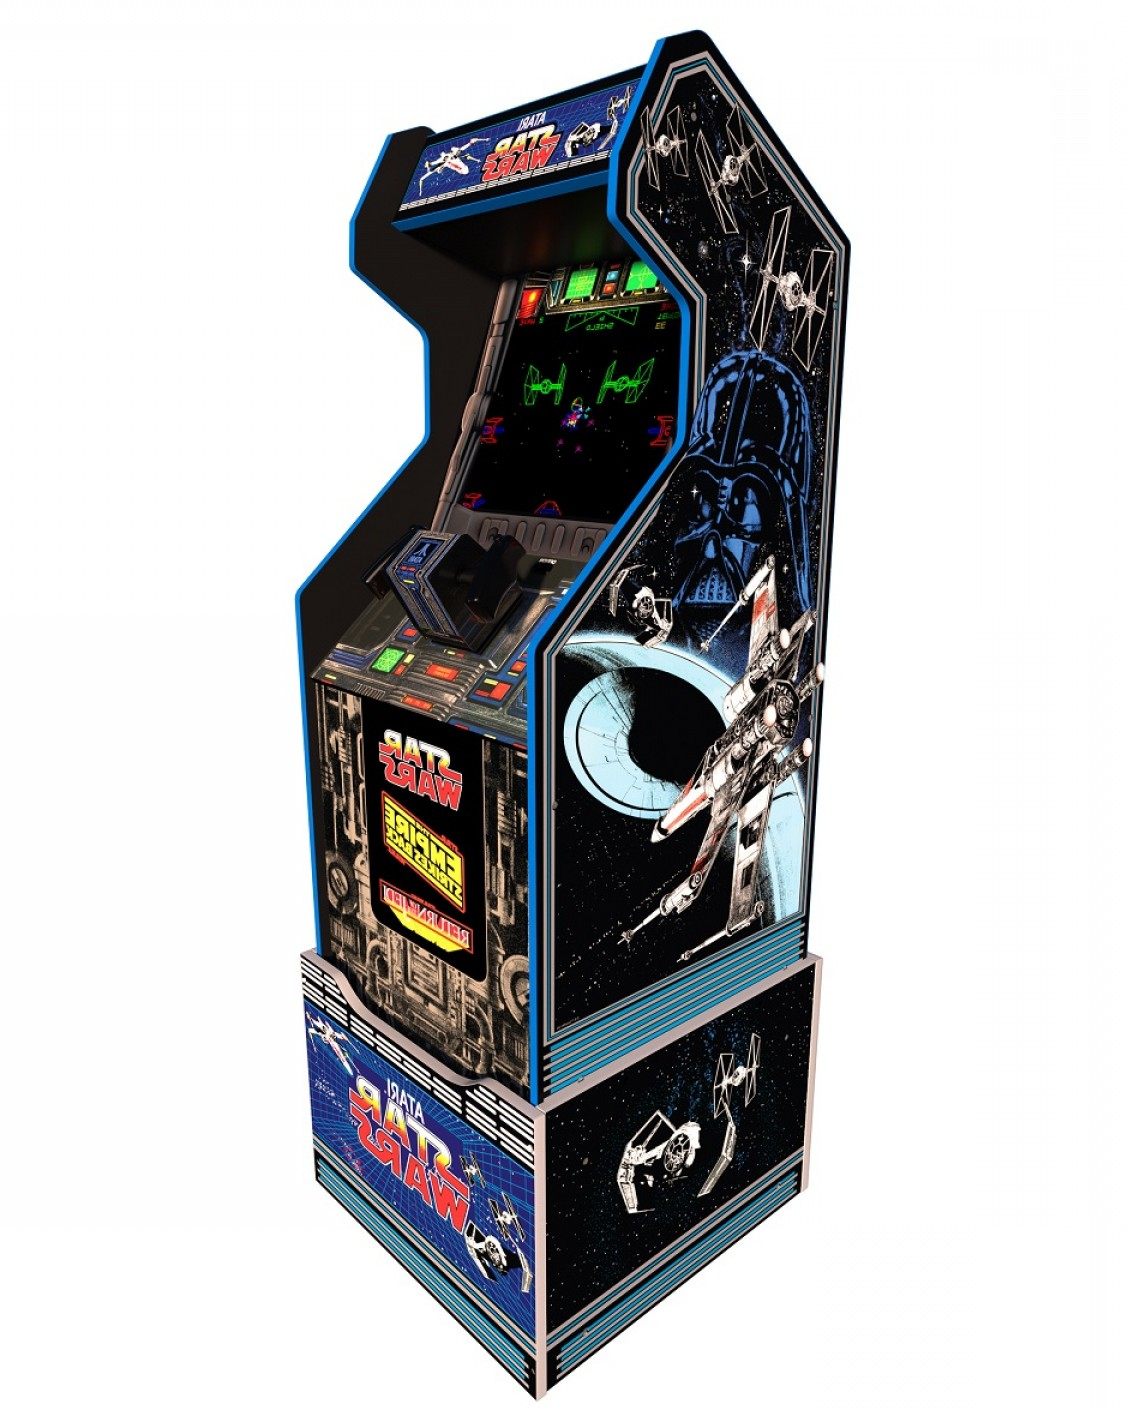 Vector Mini Arcade Machine: Arcadeups Star Wars Arcade Machine Is Now Available For Pre Order At Gamestop